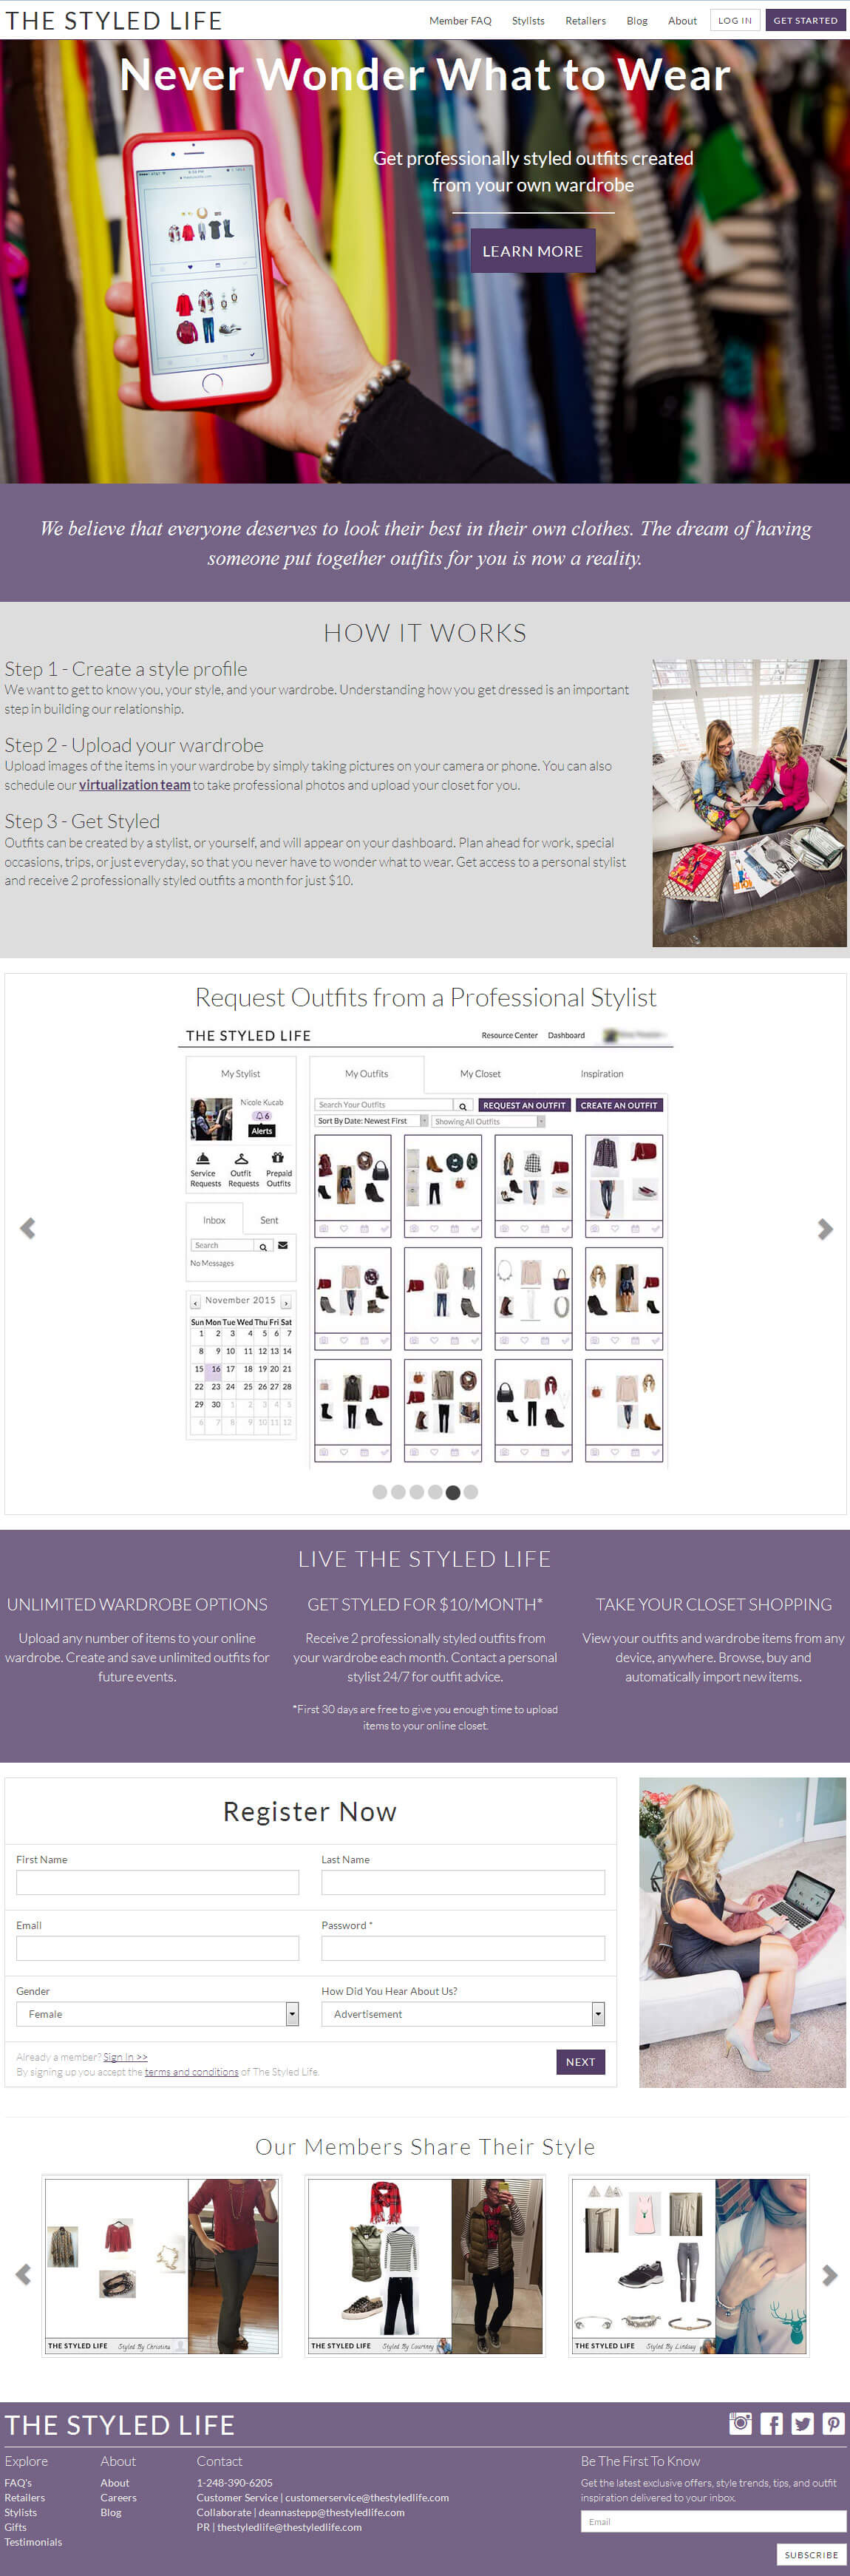 Development of A PHP Based Online Store for Selling Latest Outfits